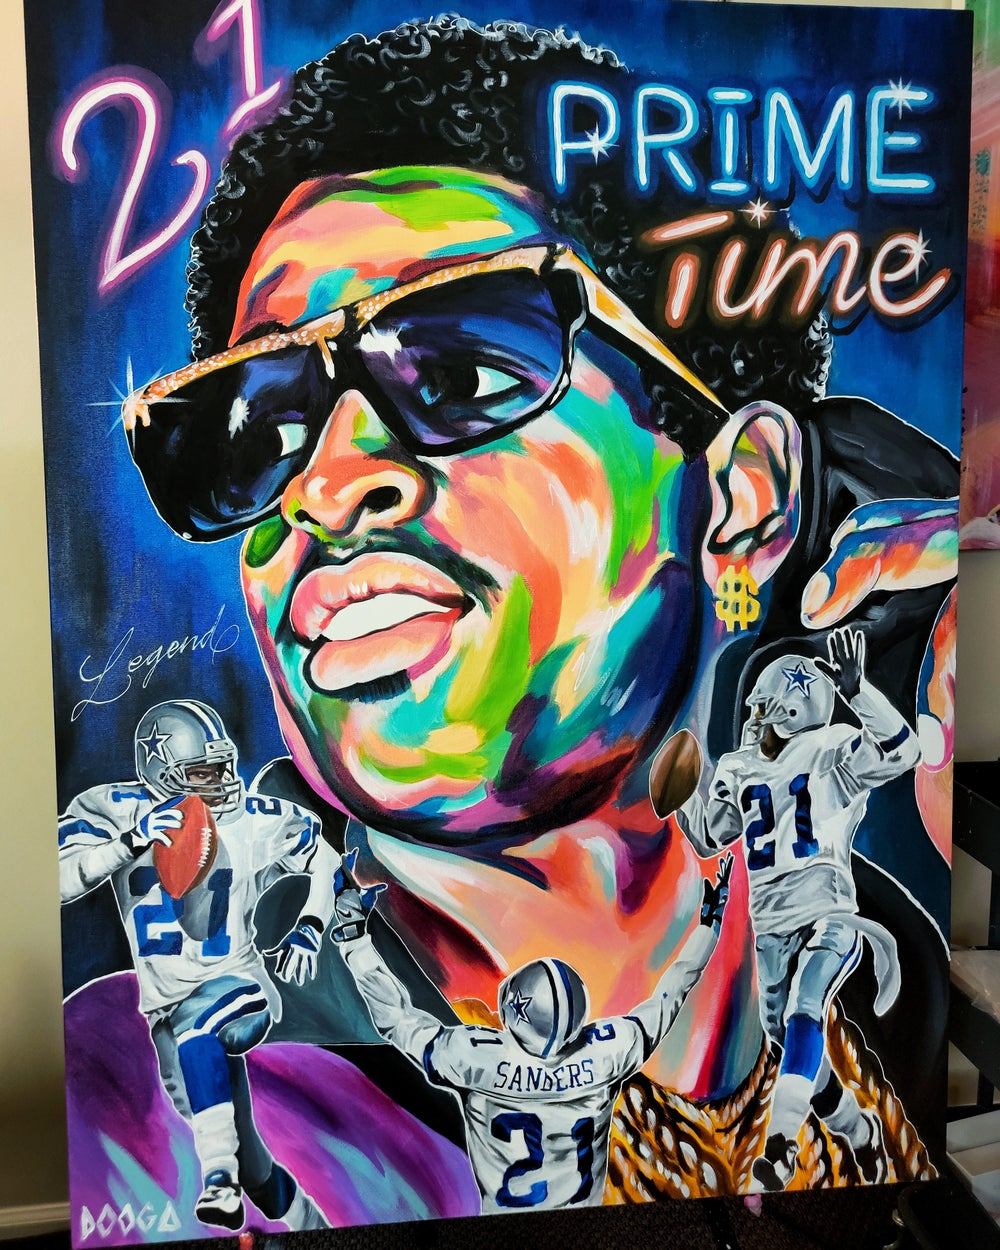 Image of Prime Time